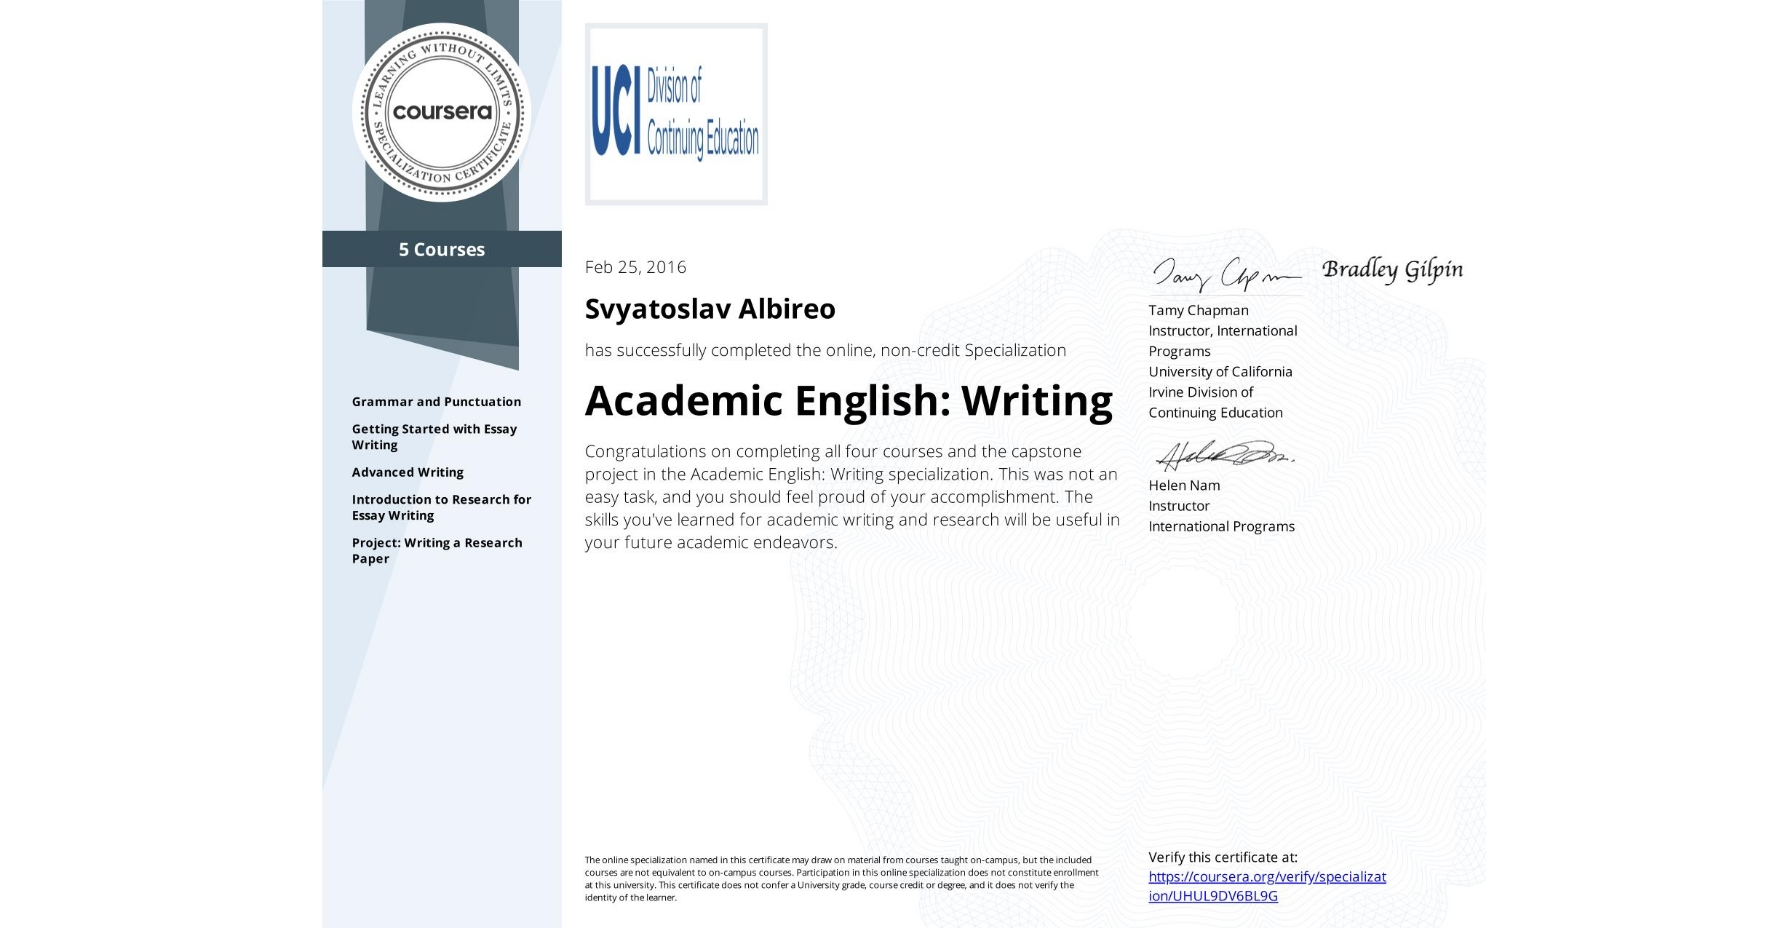 View certificate for Svyatoslav Albireo, Academic English: Writing, offered through Coursera. Congratulations on completing all four courses and the capstone project in the Academic English: Writing specialization. This was not an easy task, and you should feel proud of your accomplishment. The skills you've learned for academic writing and research will be useful in your future academic endeavors.